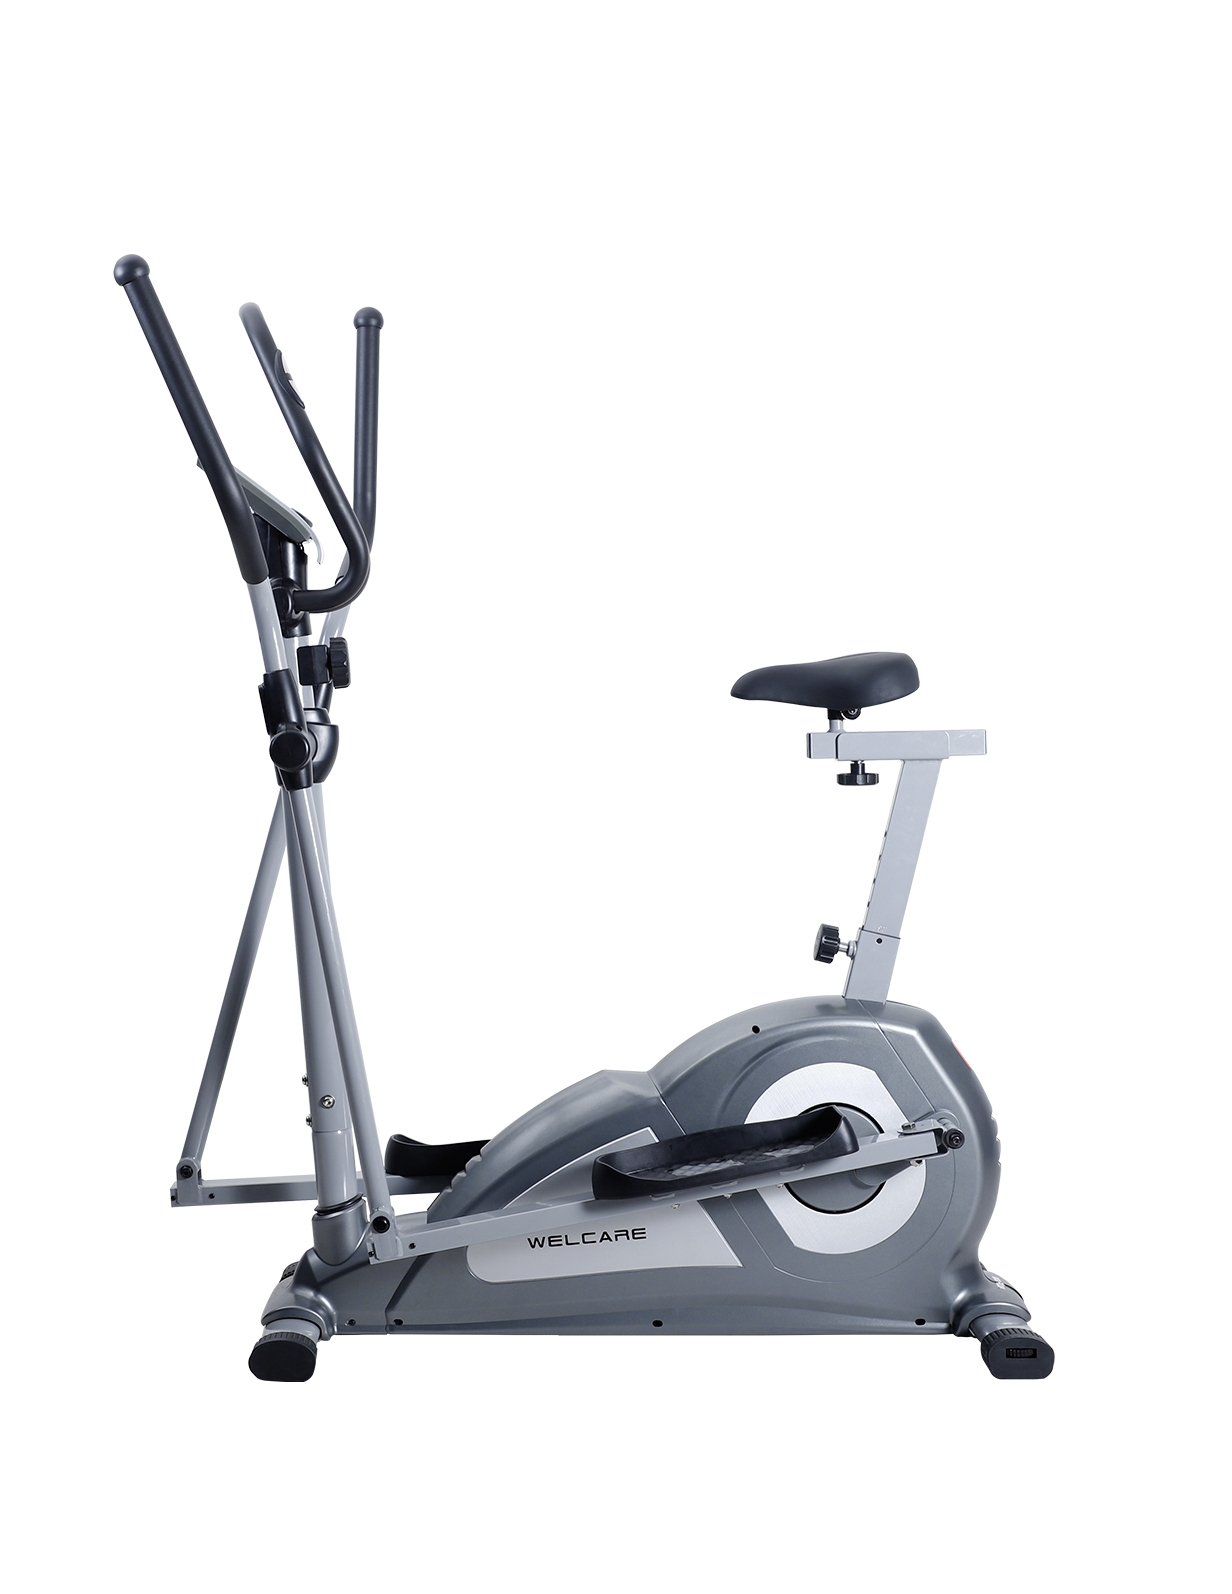 WC 6803 EC ELLIPTICAL CROSS TRAINER